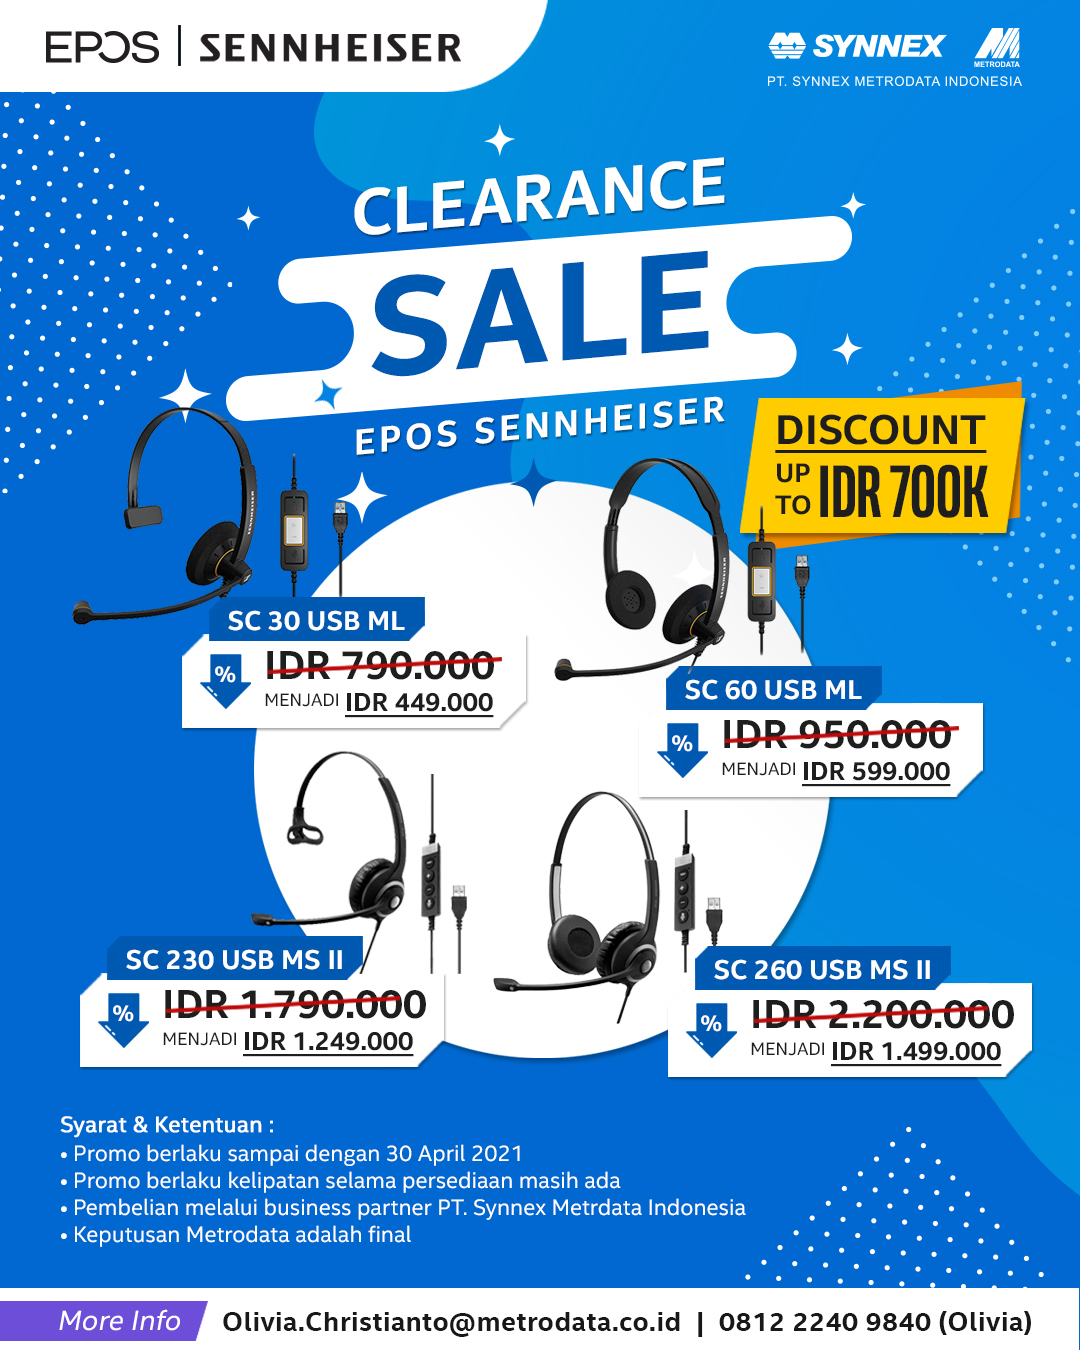 https://www.synnexmetrodata.com/wp-content/uploads/2021/03/Clearance-Sale-Promo-EPOS-Sennheiser-Discount-UP-TO-IDR-700.000.jpg